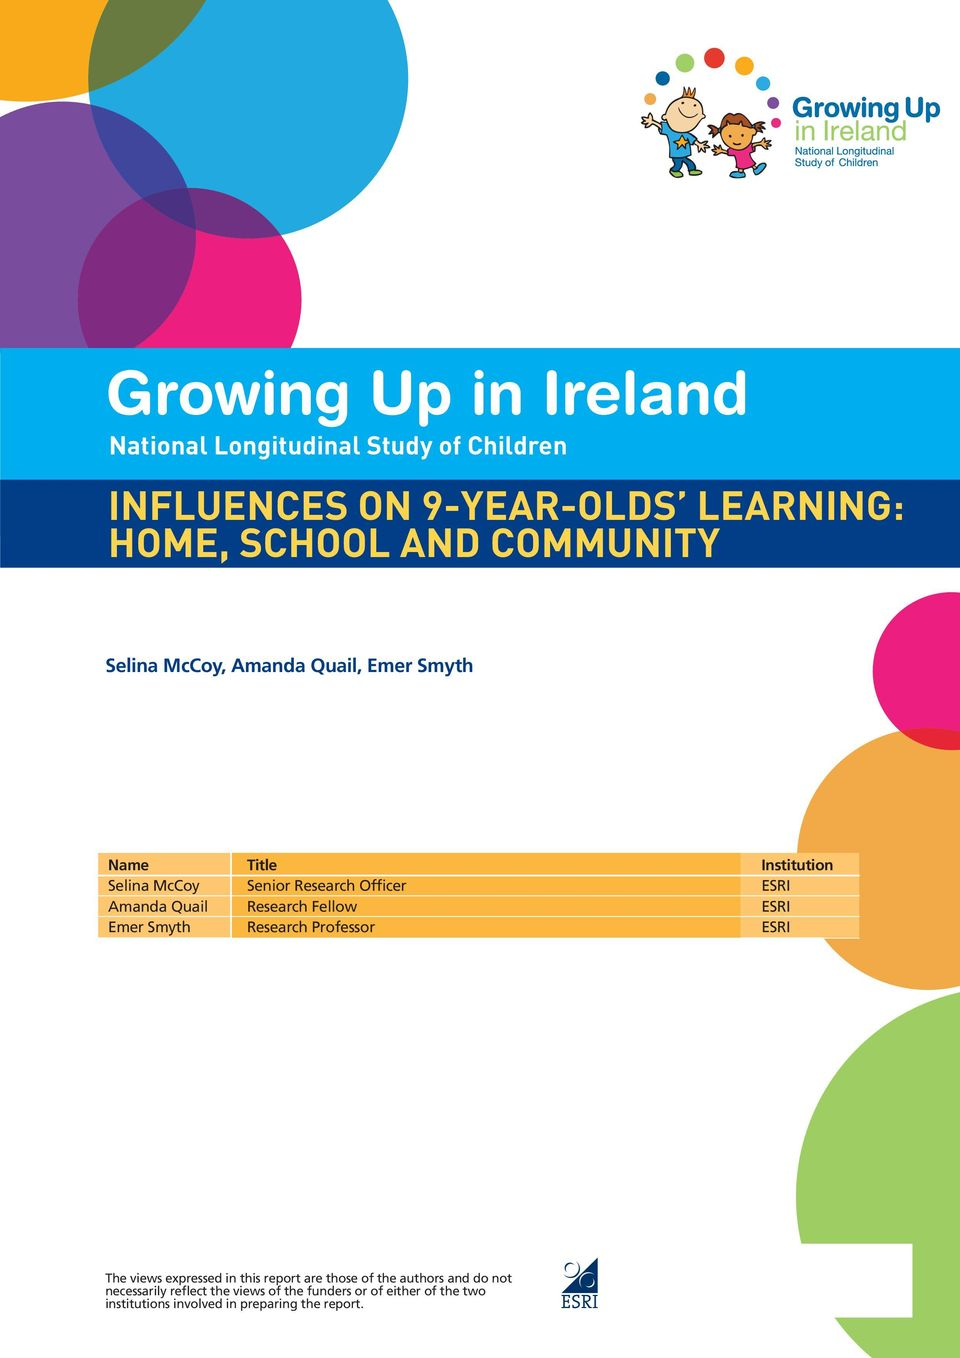 Quail Research Fellow ESRI Emer Smyth Research Professor ESRI The views expressed in this report are those of the